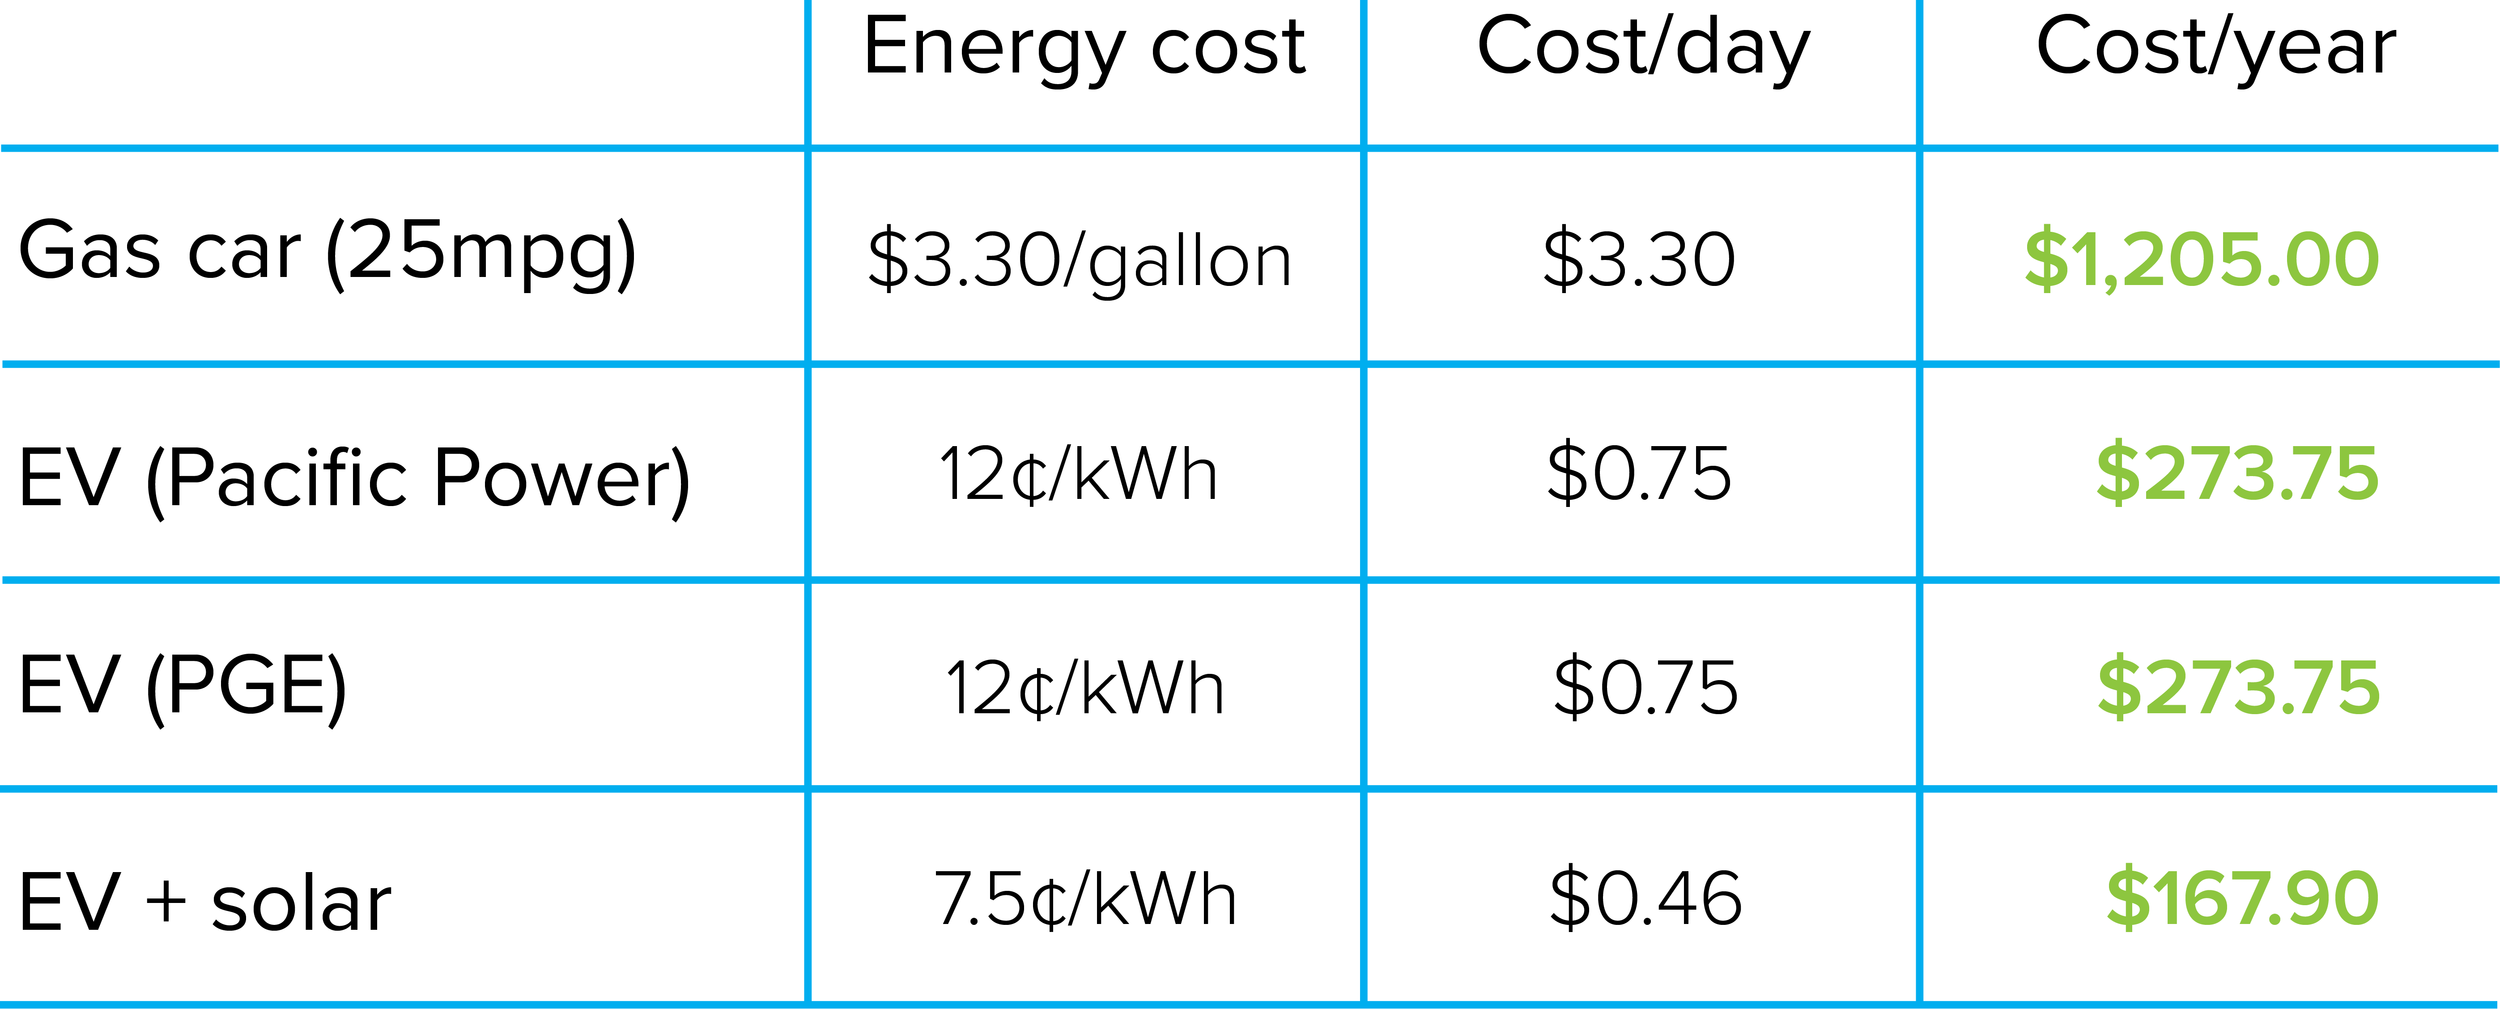 Cost of EVs vs. Cars.png